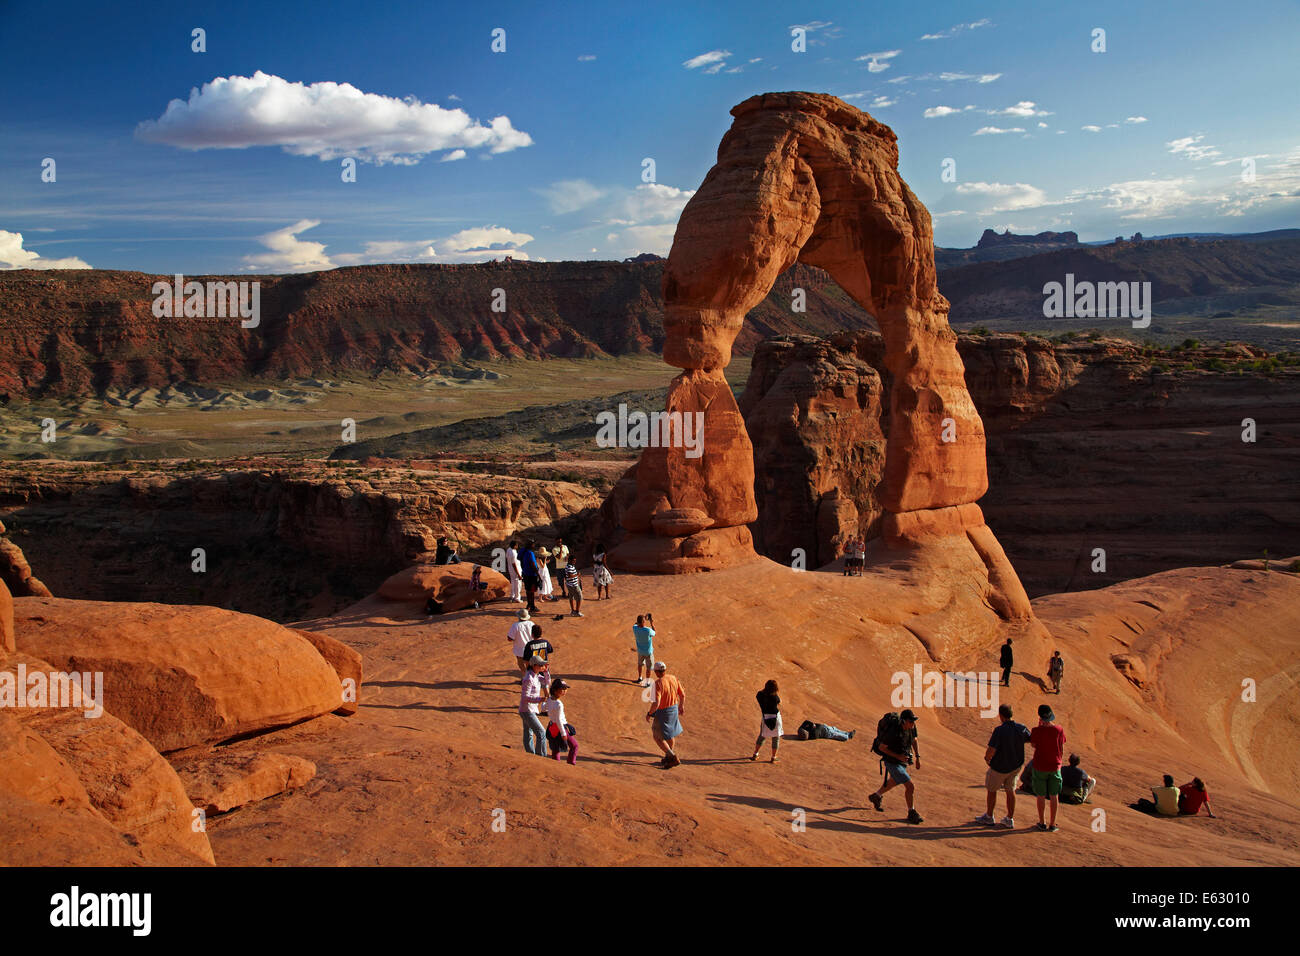 Delicate Arch (65 ft / 20 m tall iconic landmark of Utah), and tourists, Arches National Park, near Moab, Utah, - Stock Image